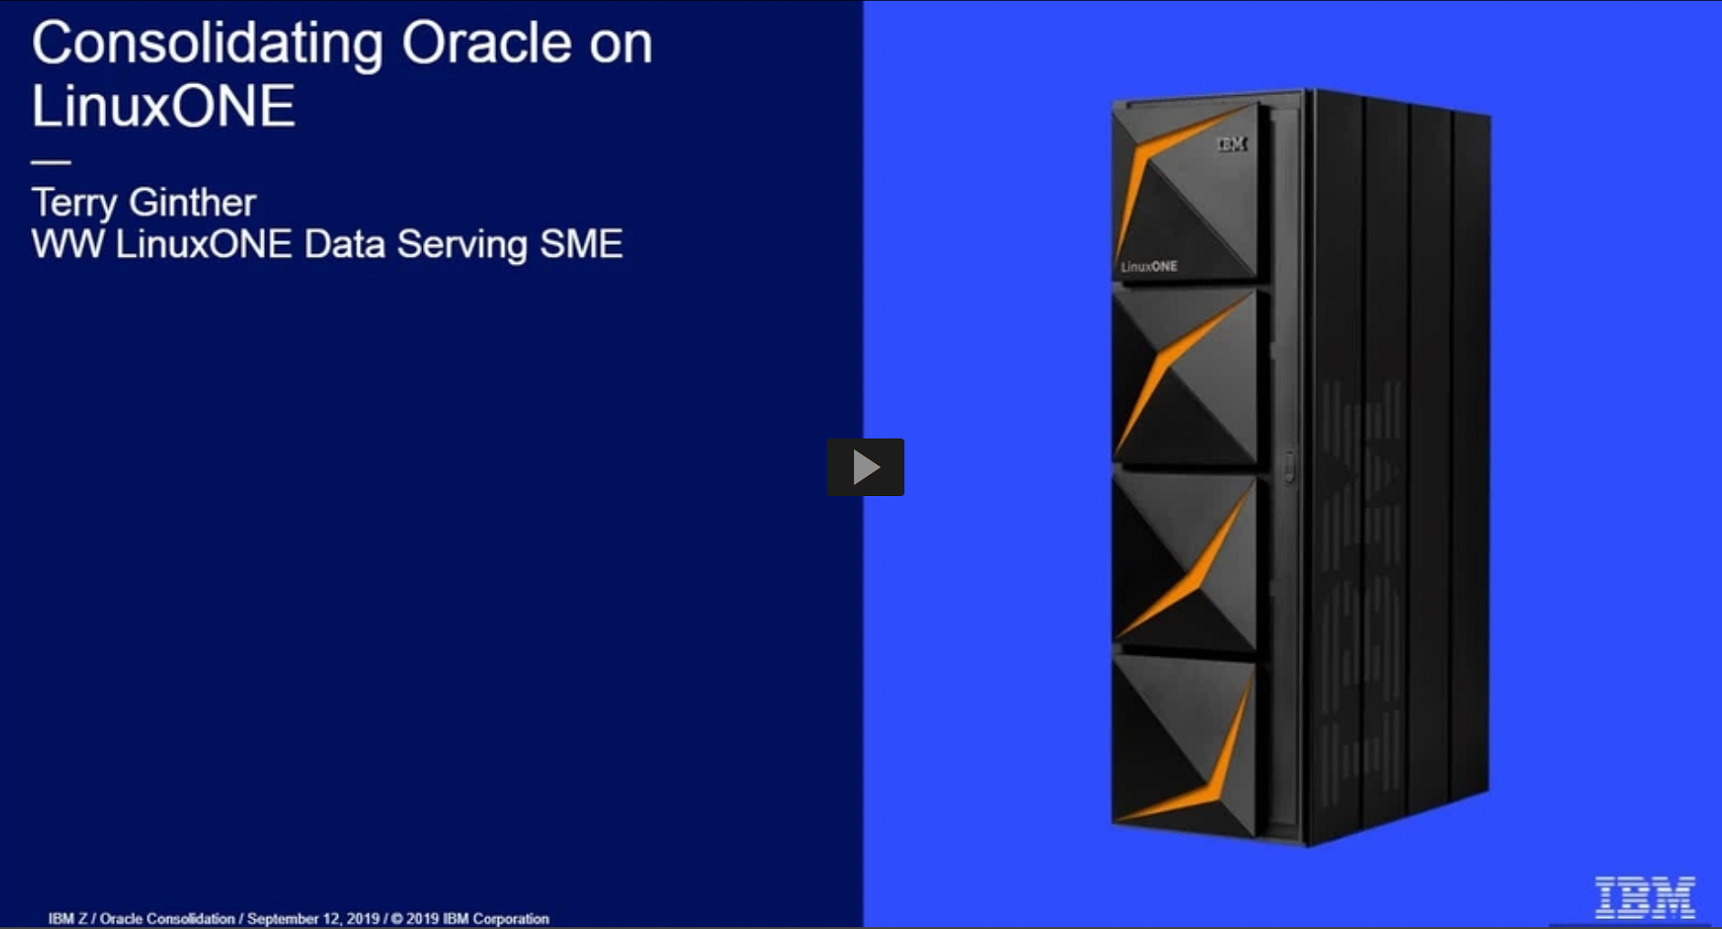 MediaCenter - Consolidating Oracle on LinuxONE thumbnail